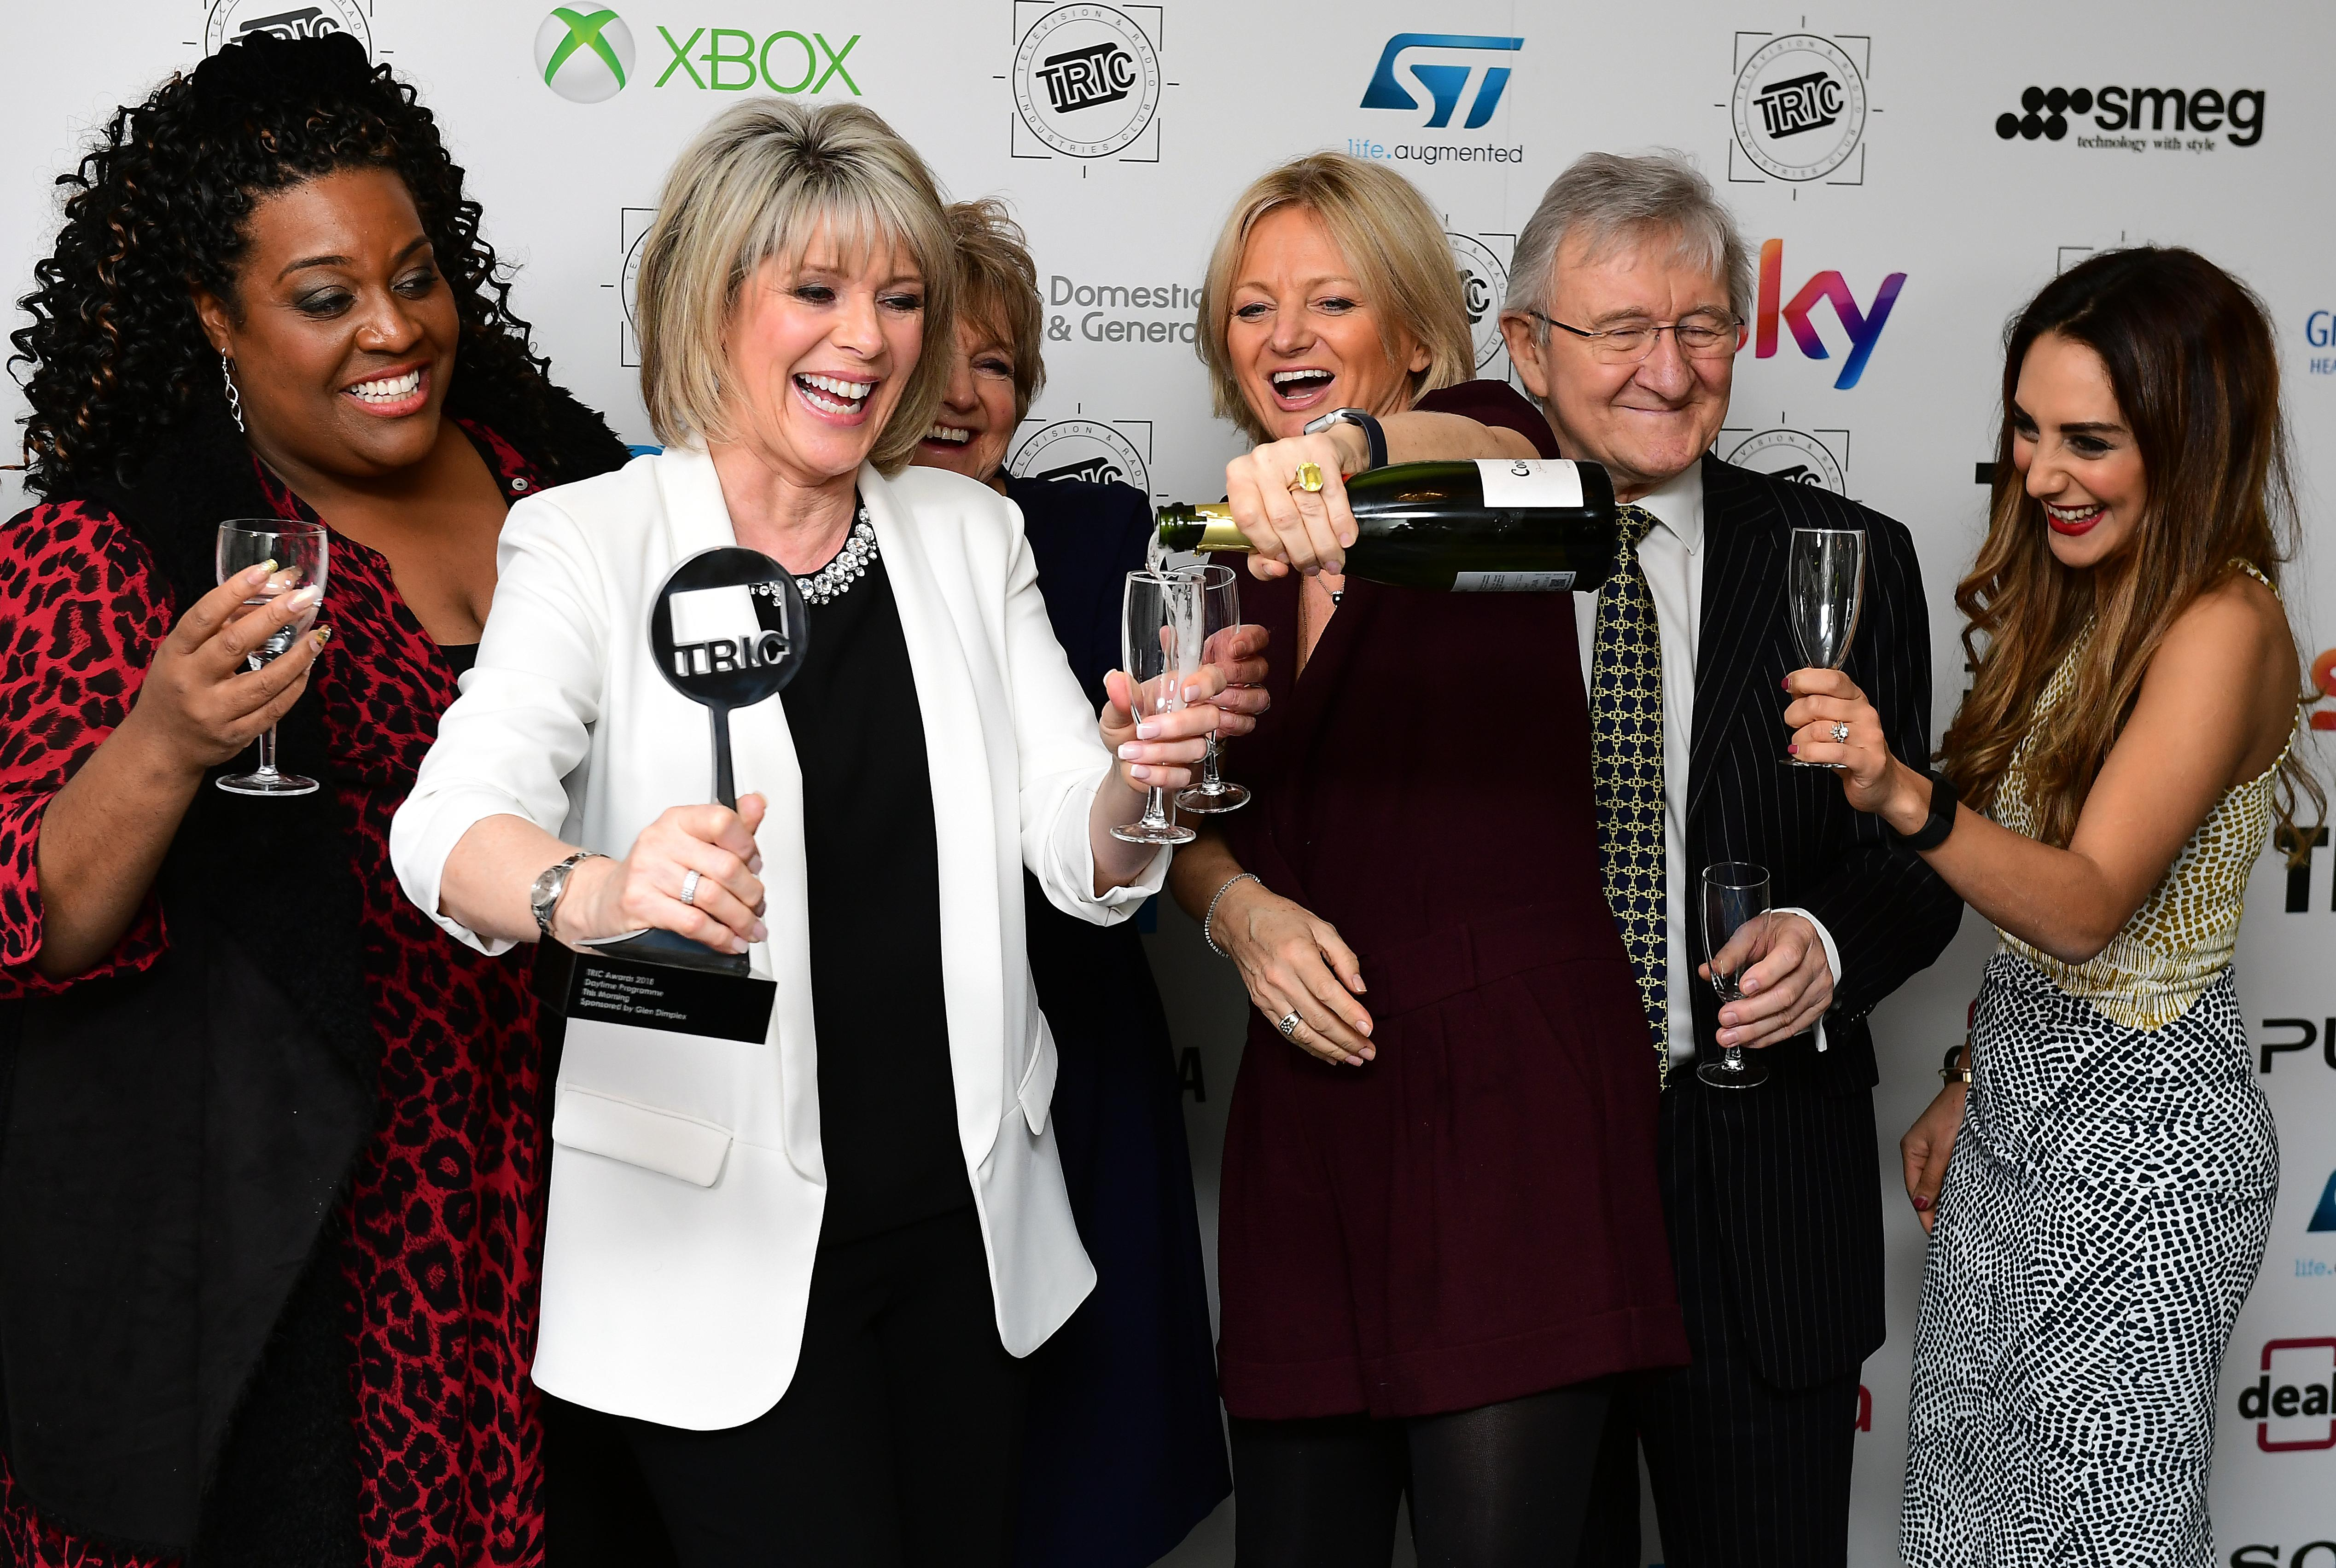 Chris Steele (second right), Ruth Langsford (second left), Alison Hammond (left), Alice Beer (third right) with the Daytime Programme Award for This Morning during the 2018 TRIC Awards at the Grosvenor House Hotel, London.